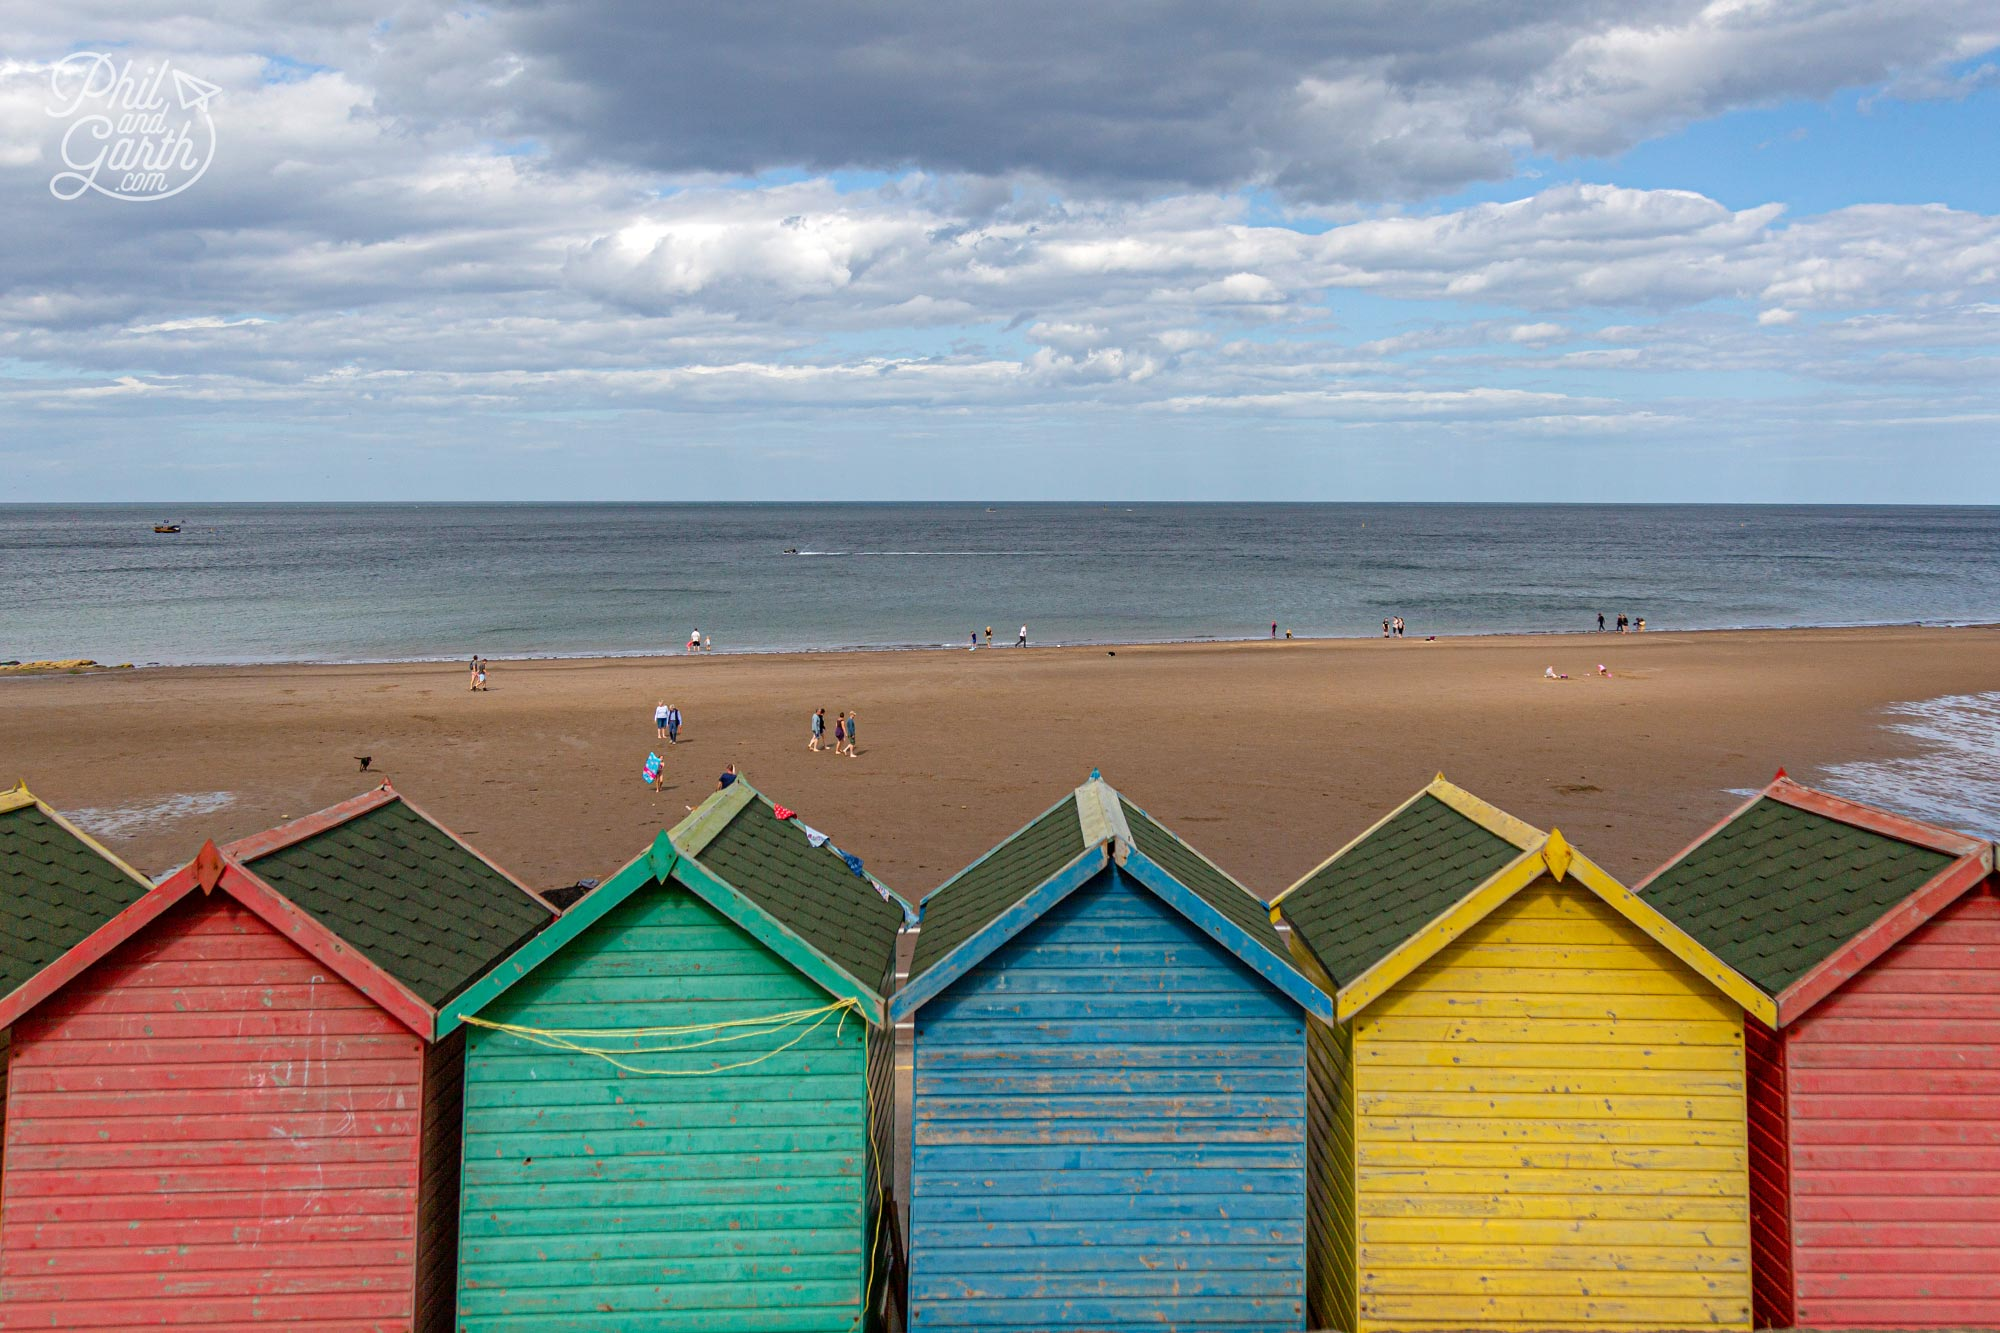 Rows of colourful beach huts along the promenade at Whitby Beach